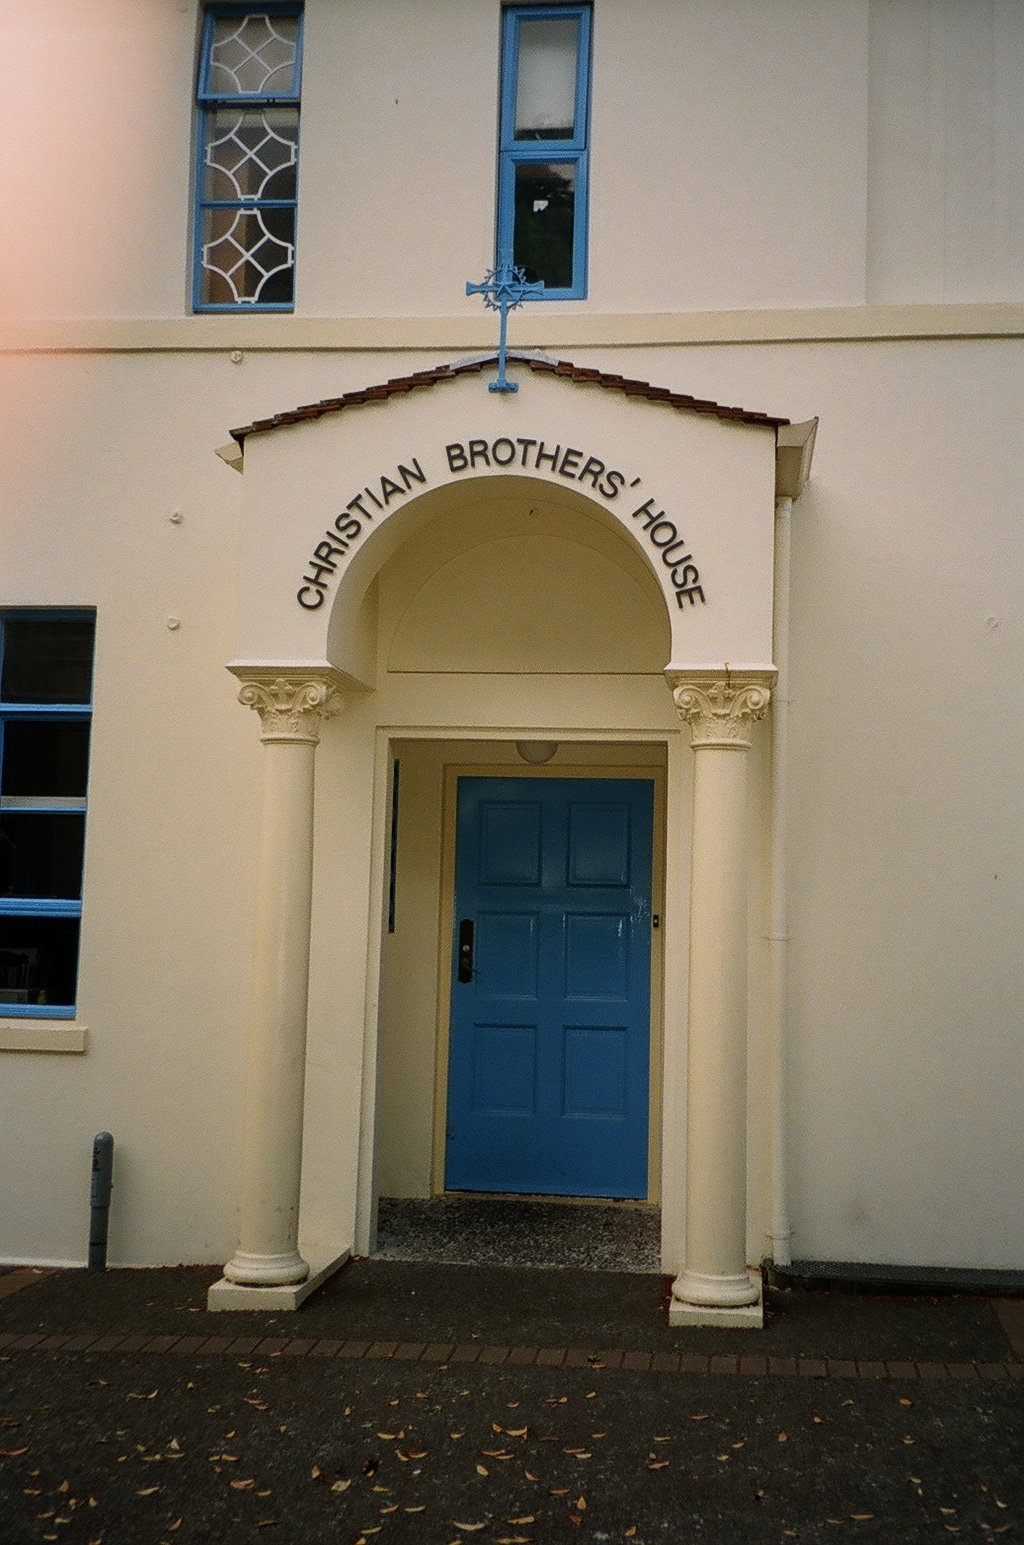 File:St Peter's College - Brothers' House entrance.JPG - Wikimedia ...